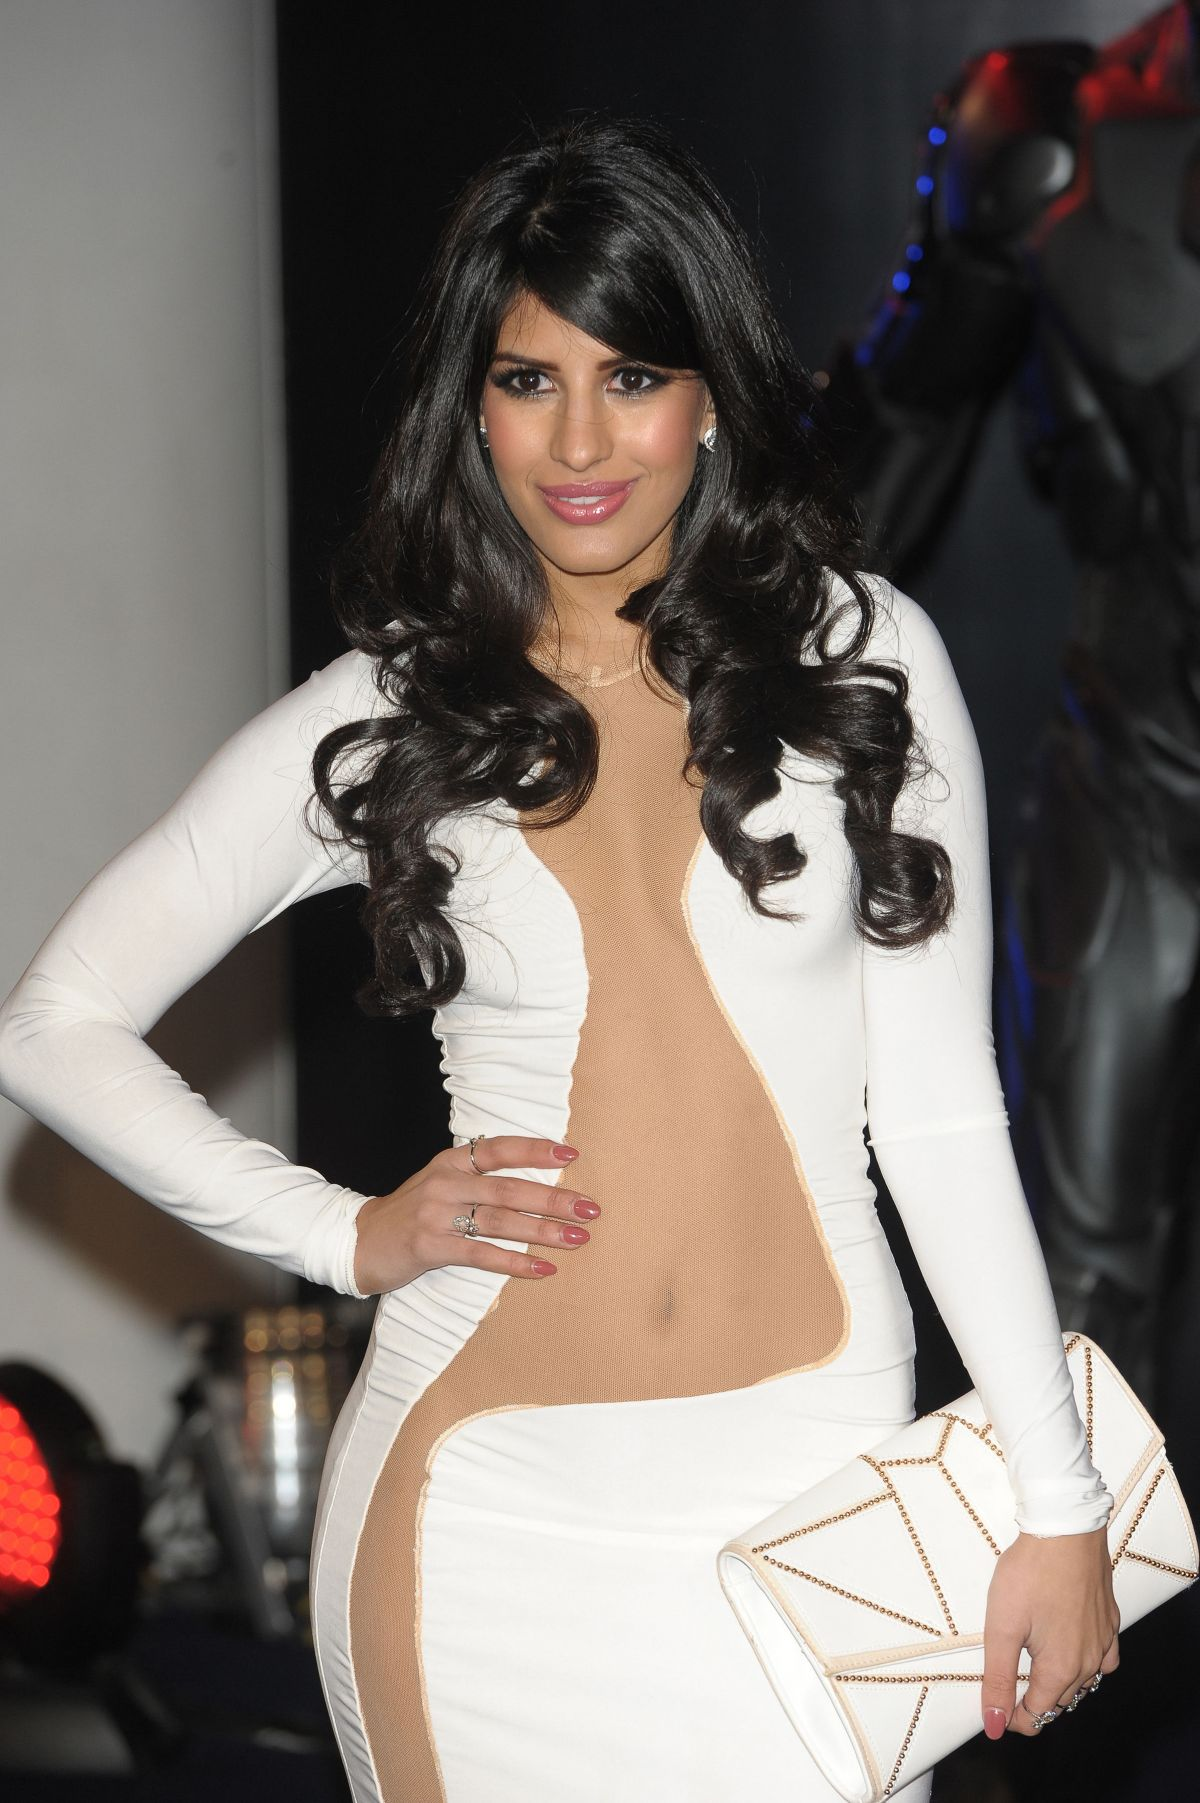 jasmin-walia-at-robocop-premiere-in-london_19.jpg - 234.46 KB